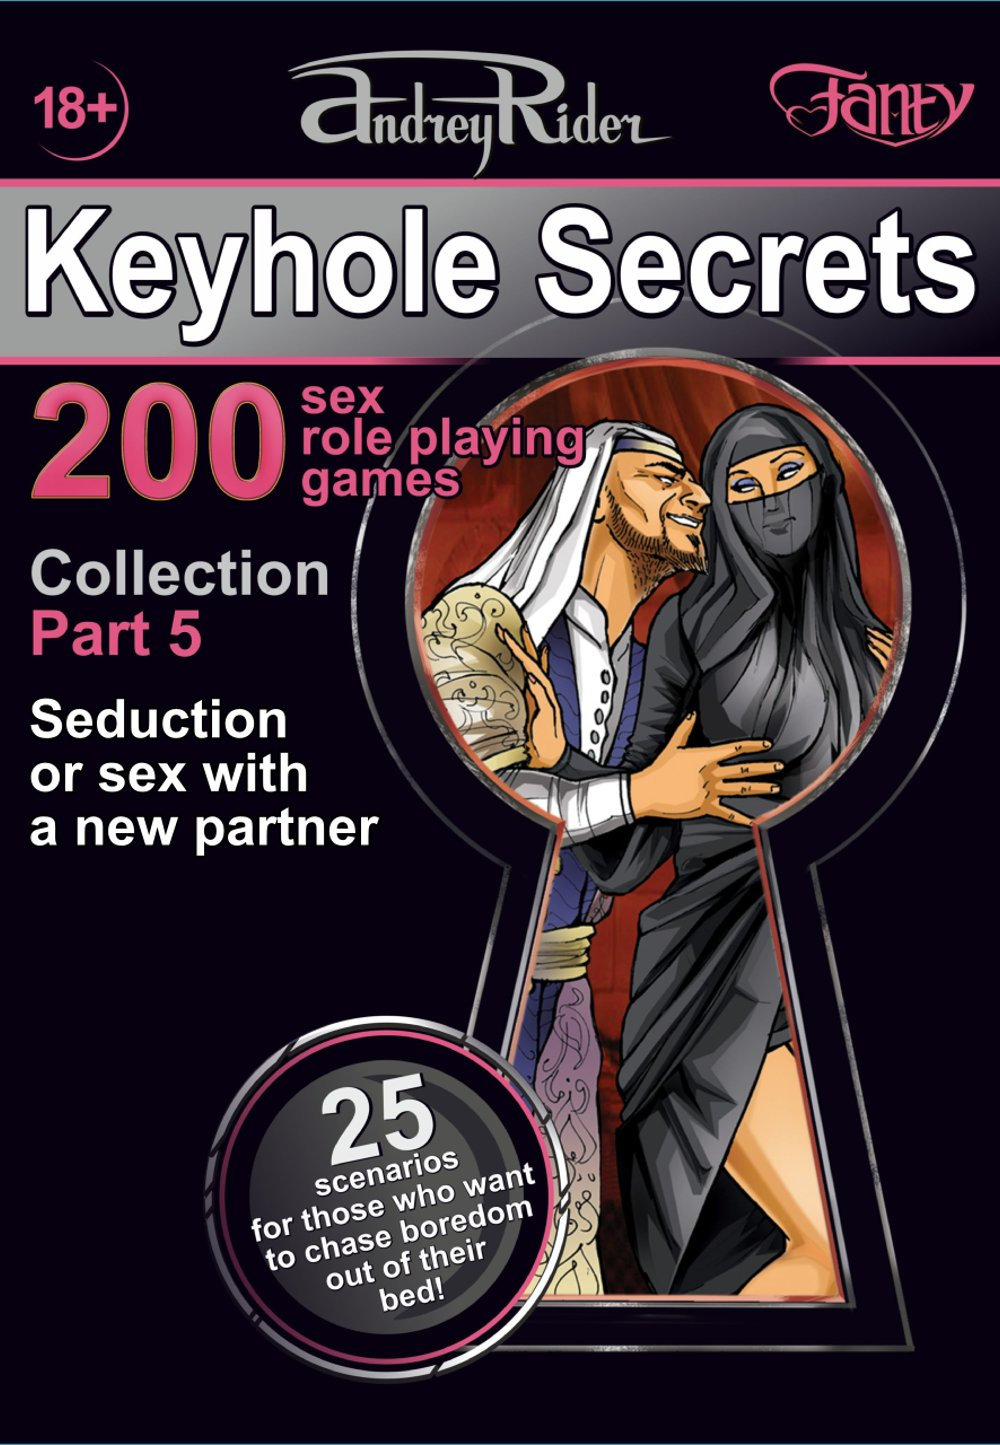 Collection of 200 Sex Role Playing Games. Part 5 (scenarios 101-125)